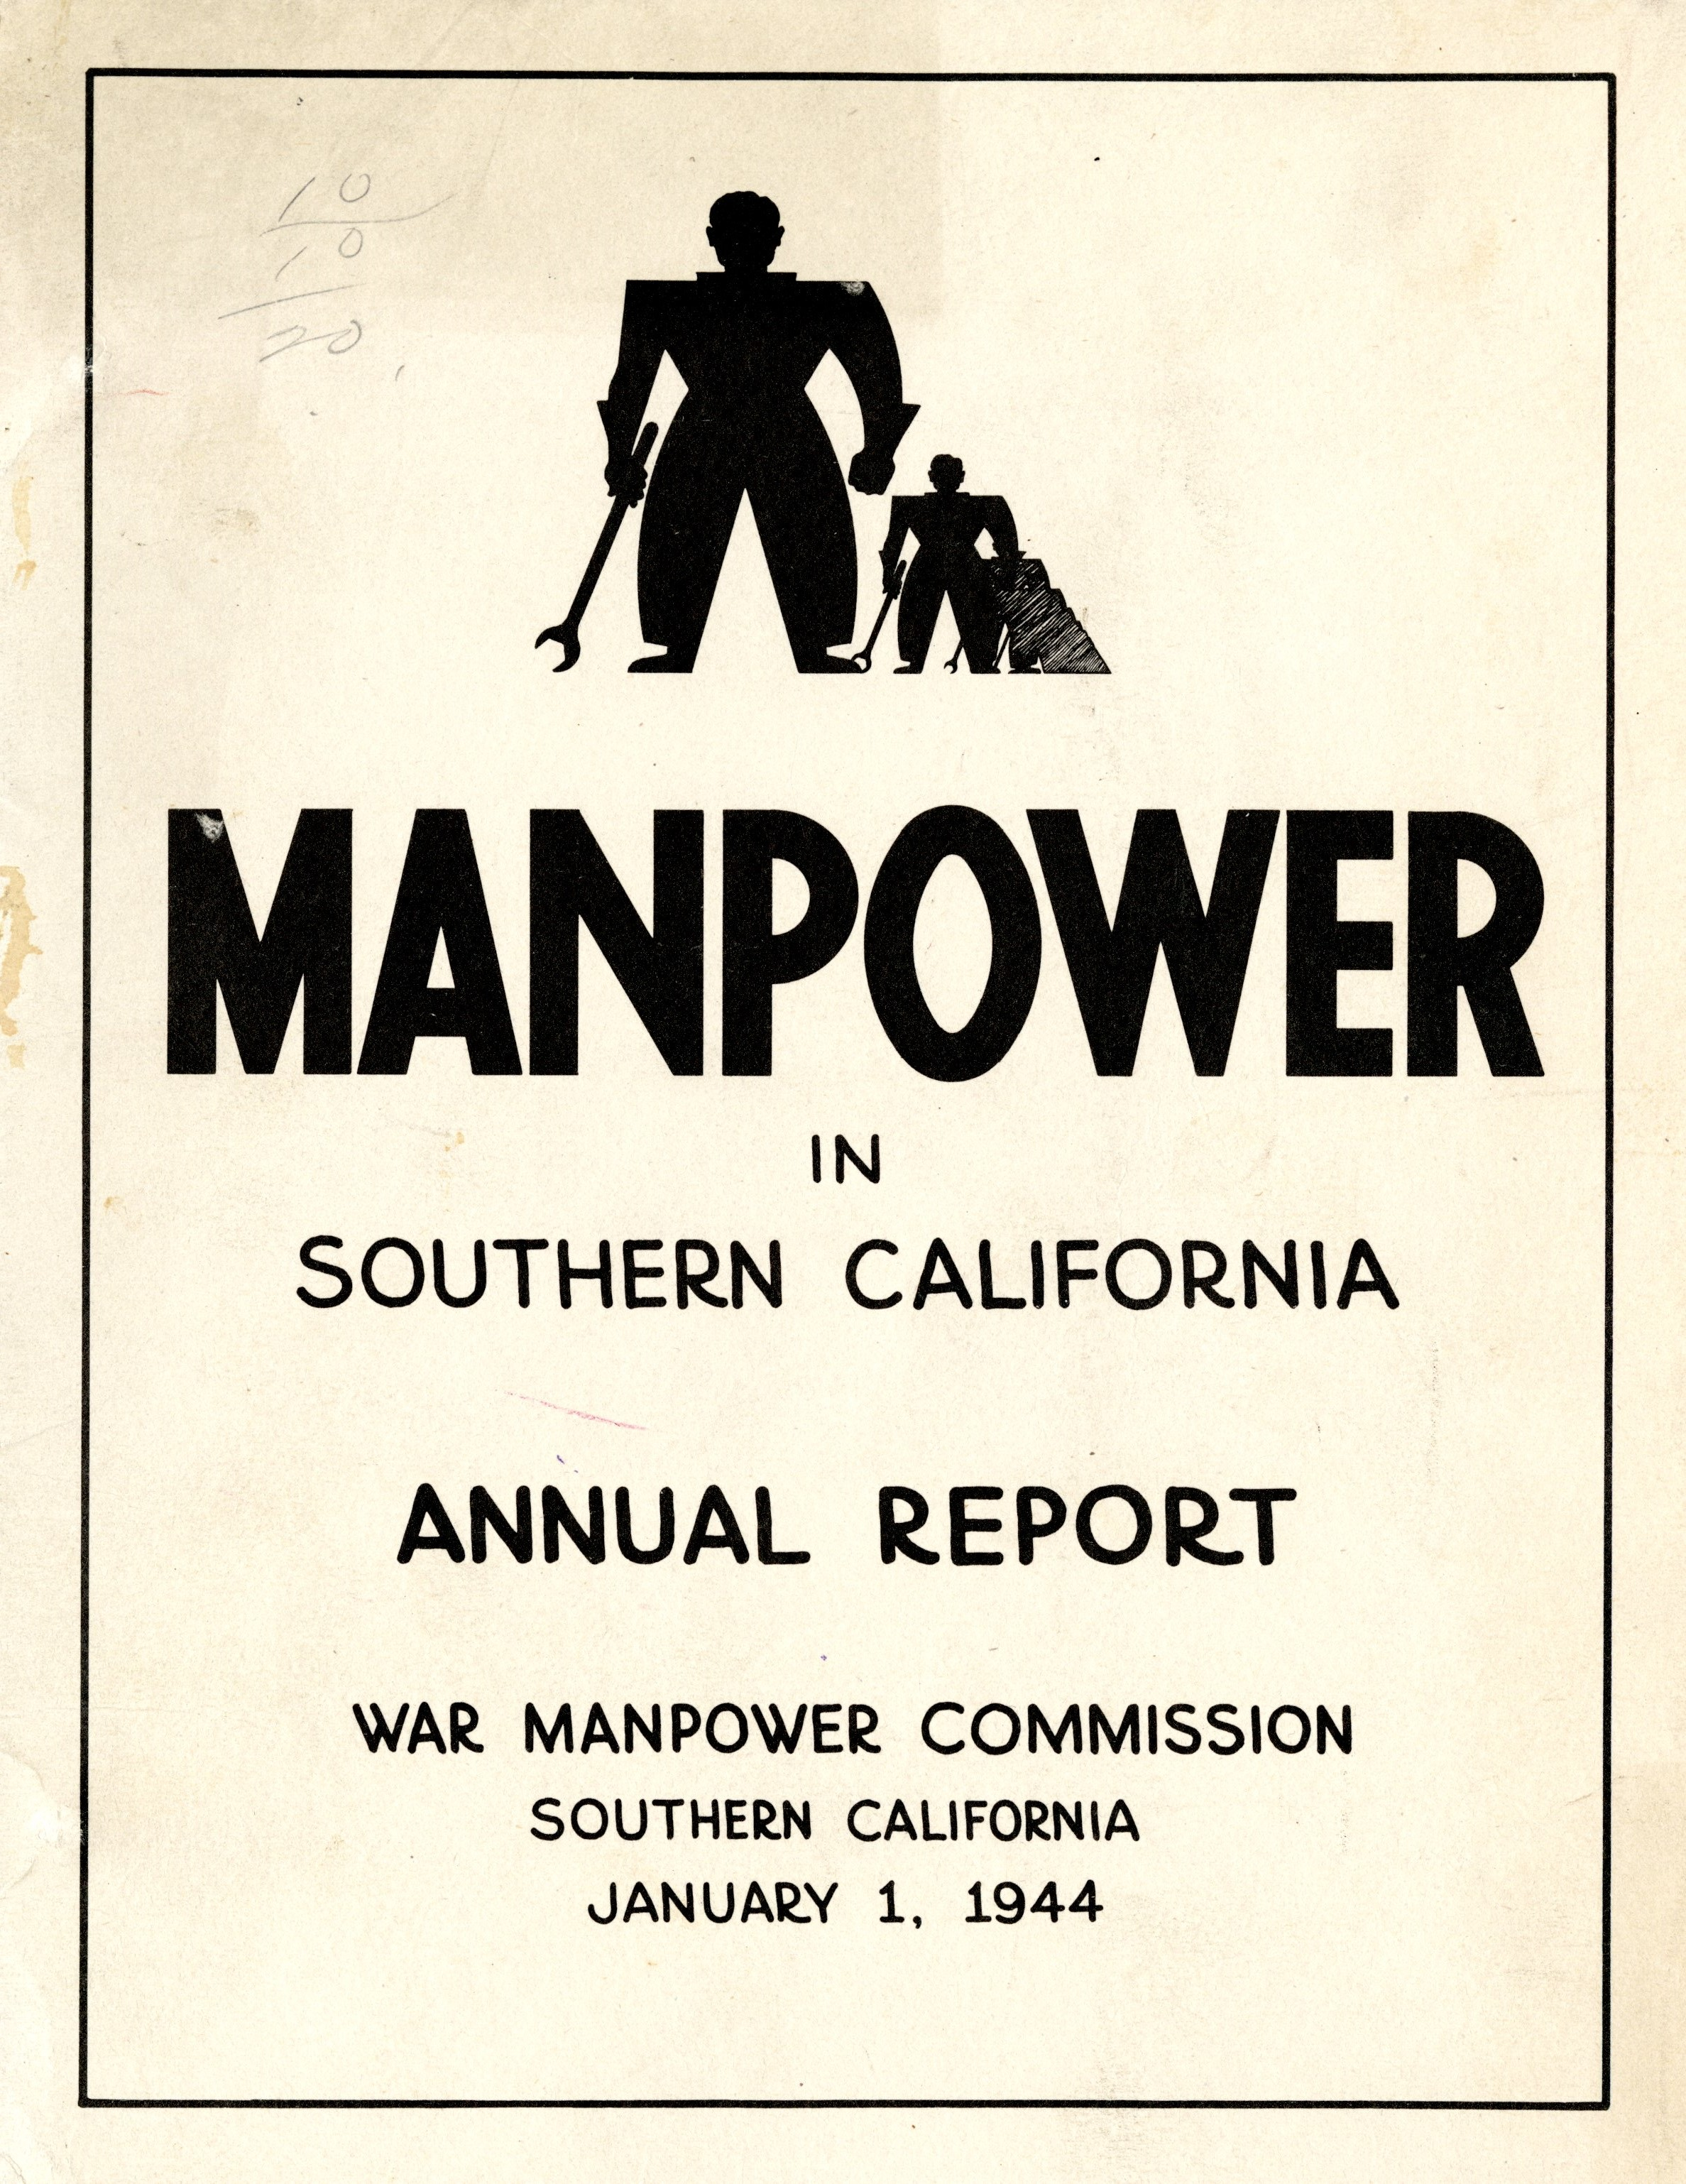 Manpower in Southern California Annual Report